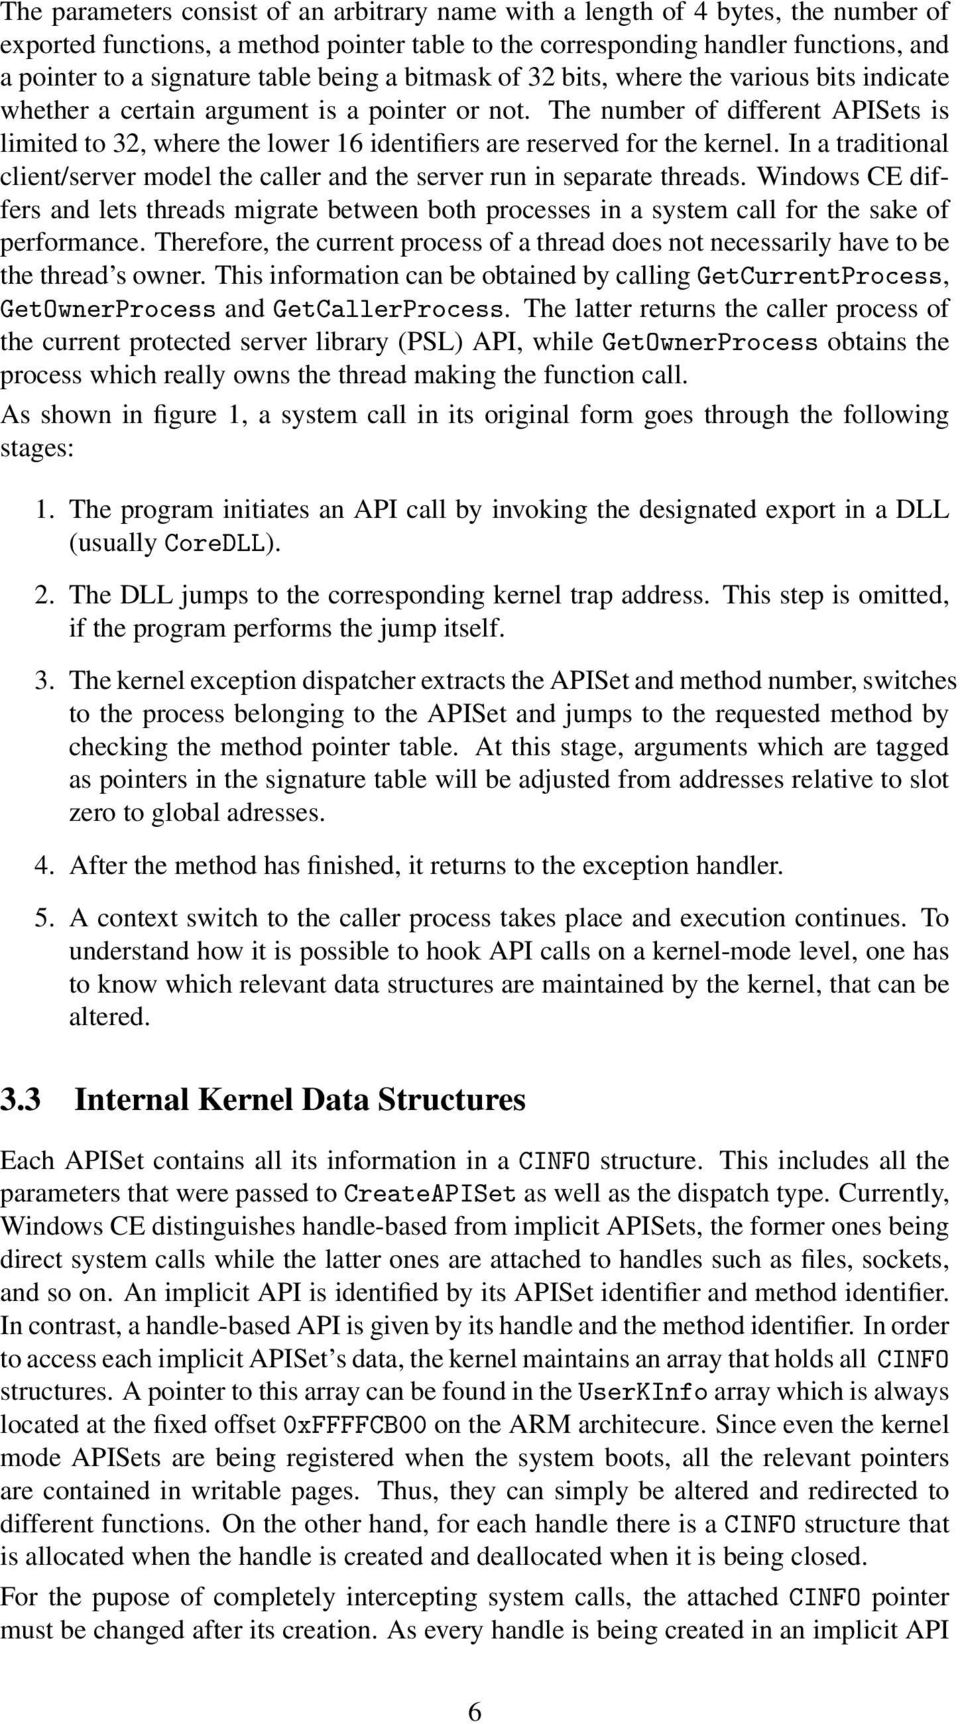 The number of different APISets is limited to 32, where the lower 16 identifiers are reserved for the kernel. In a traditional client/server model the caller and the server run in separate threads.